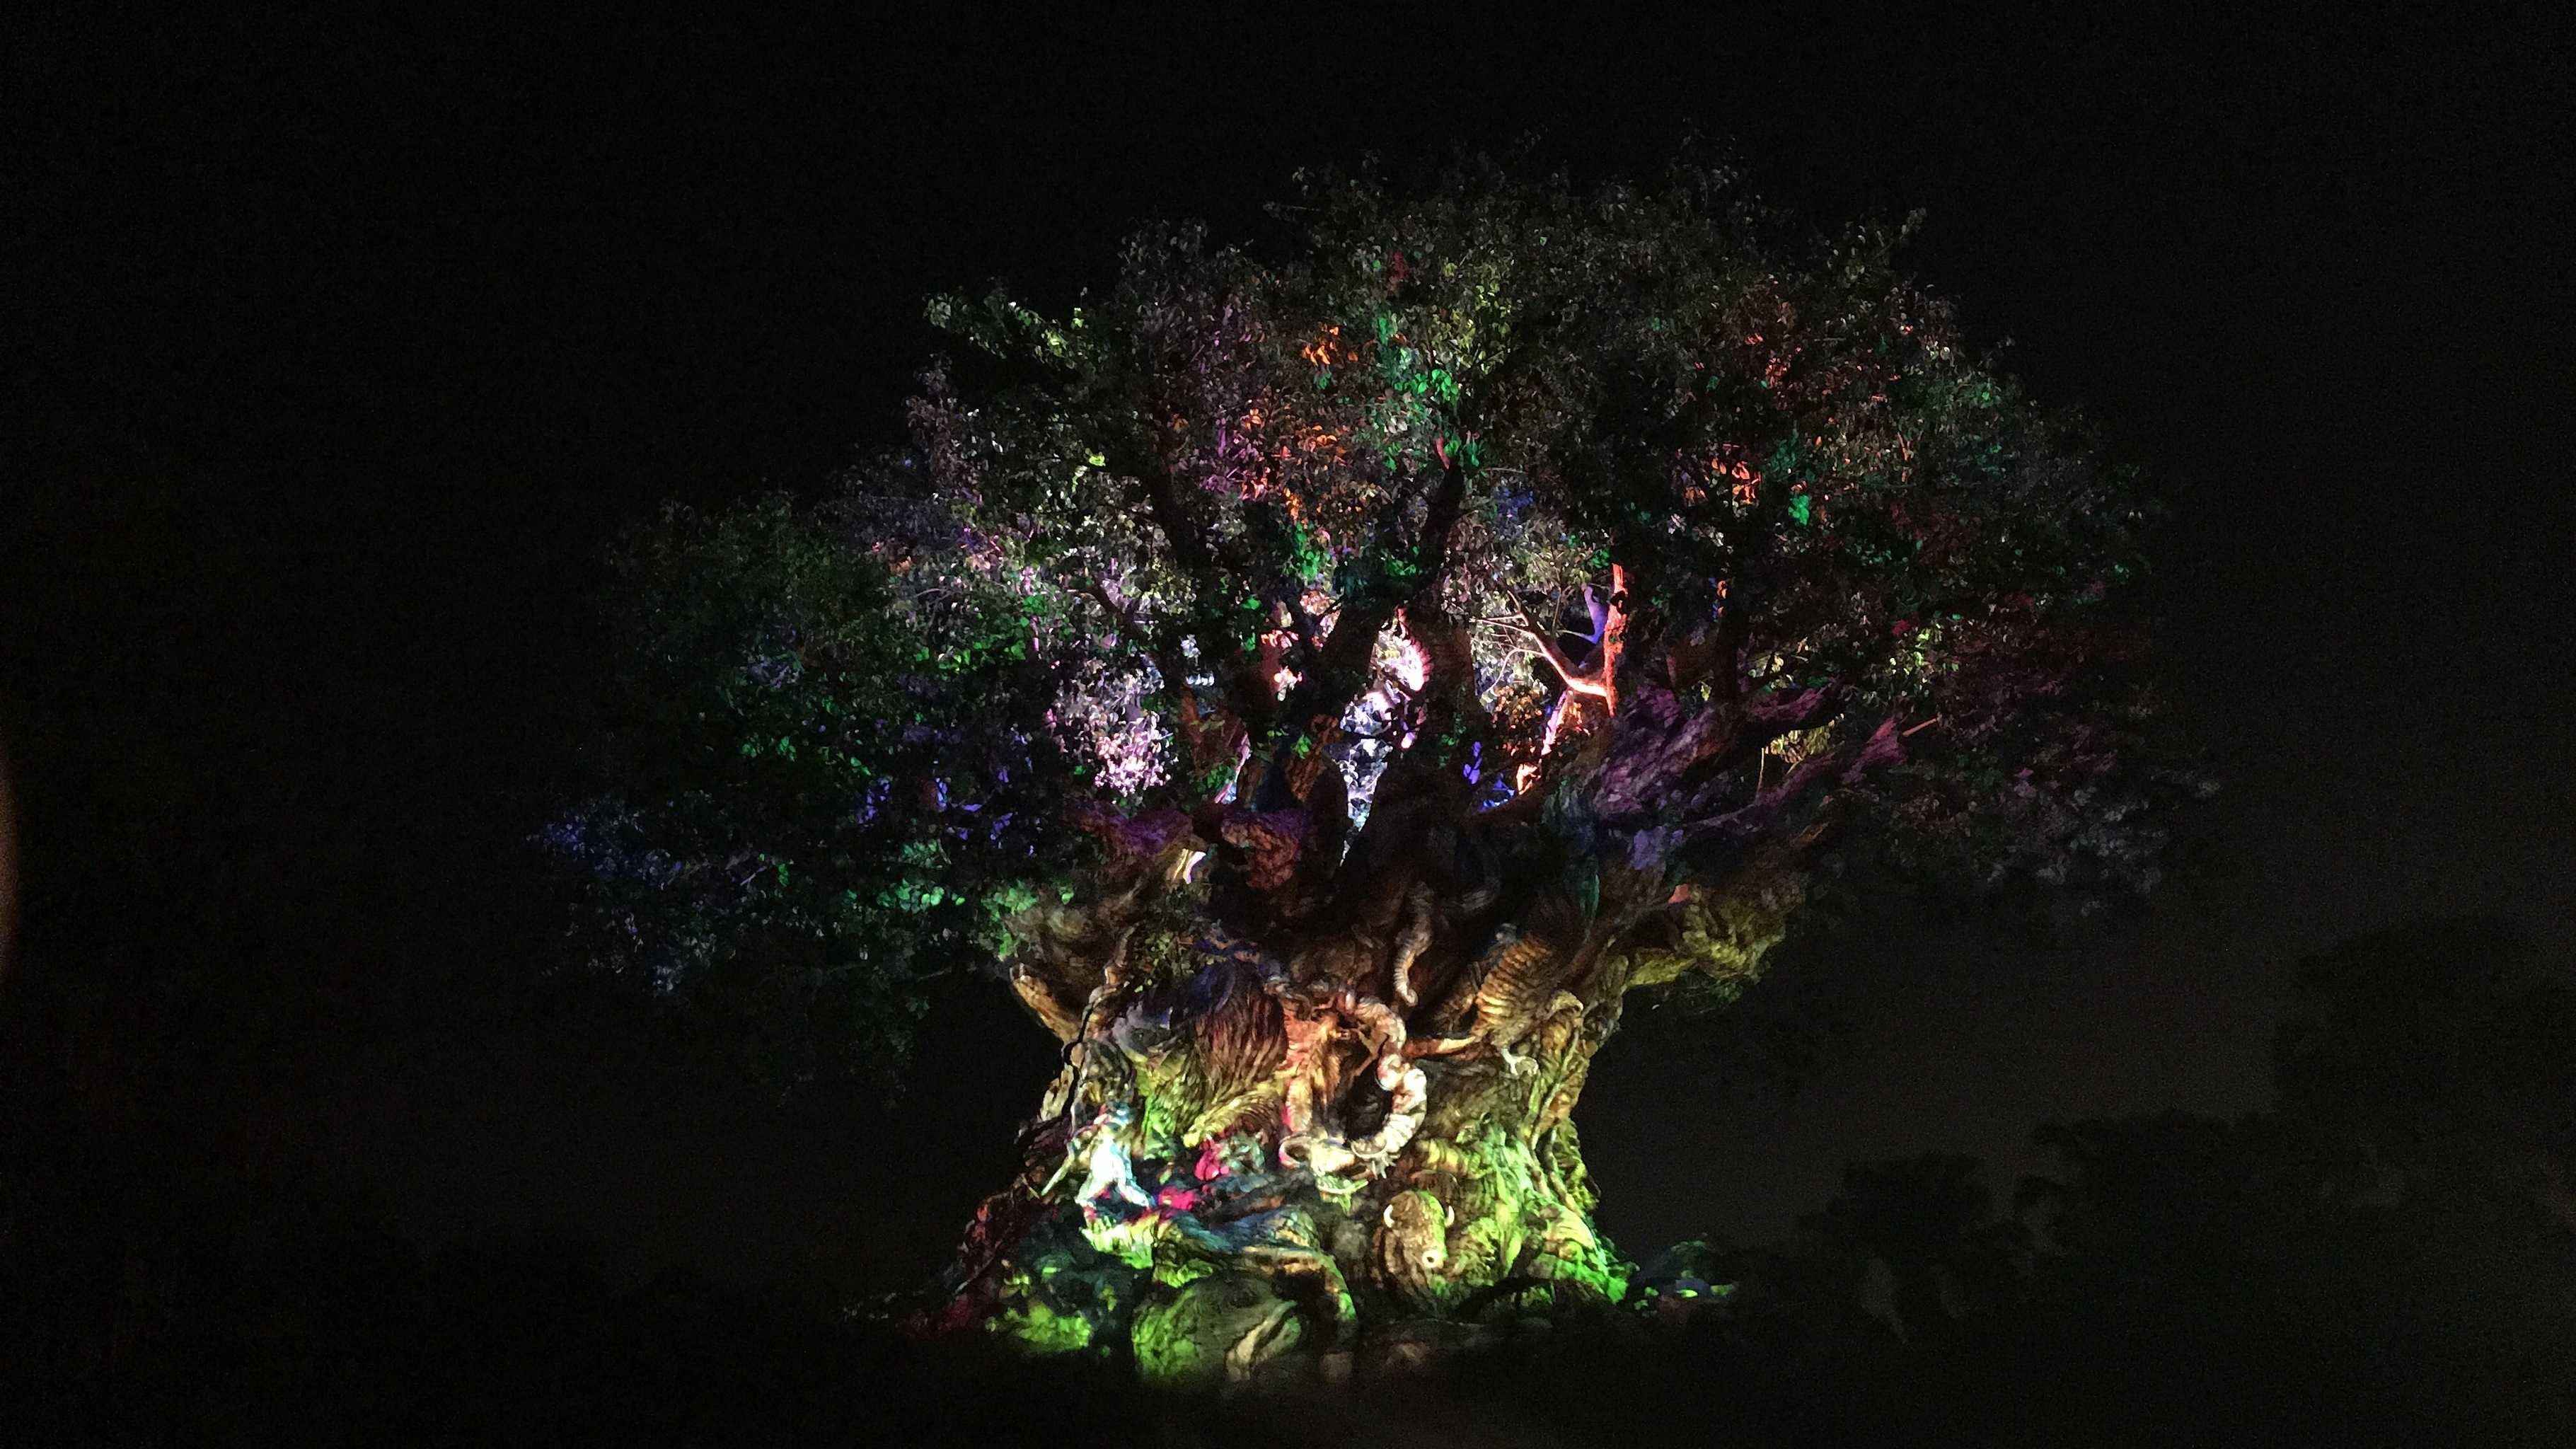 Disney's Animal Kingdom awakens after dark